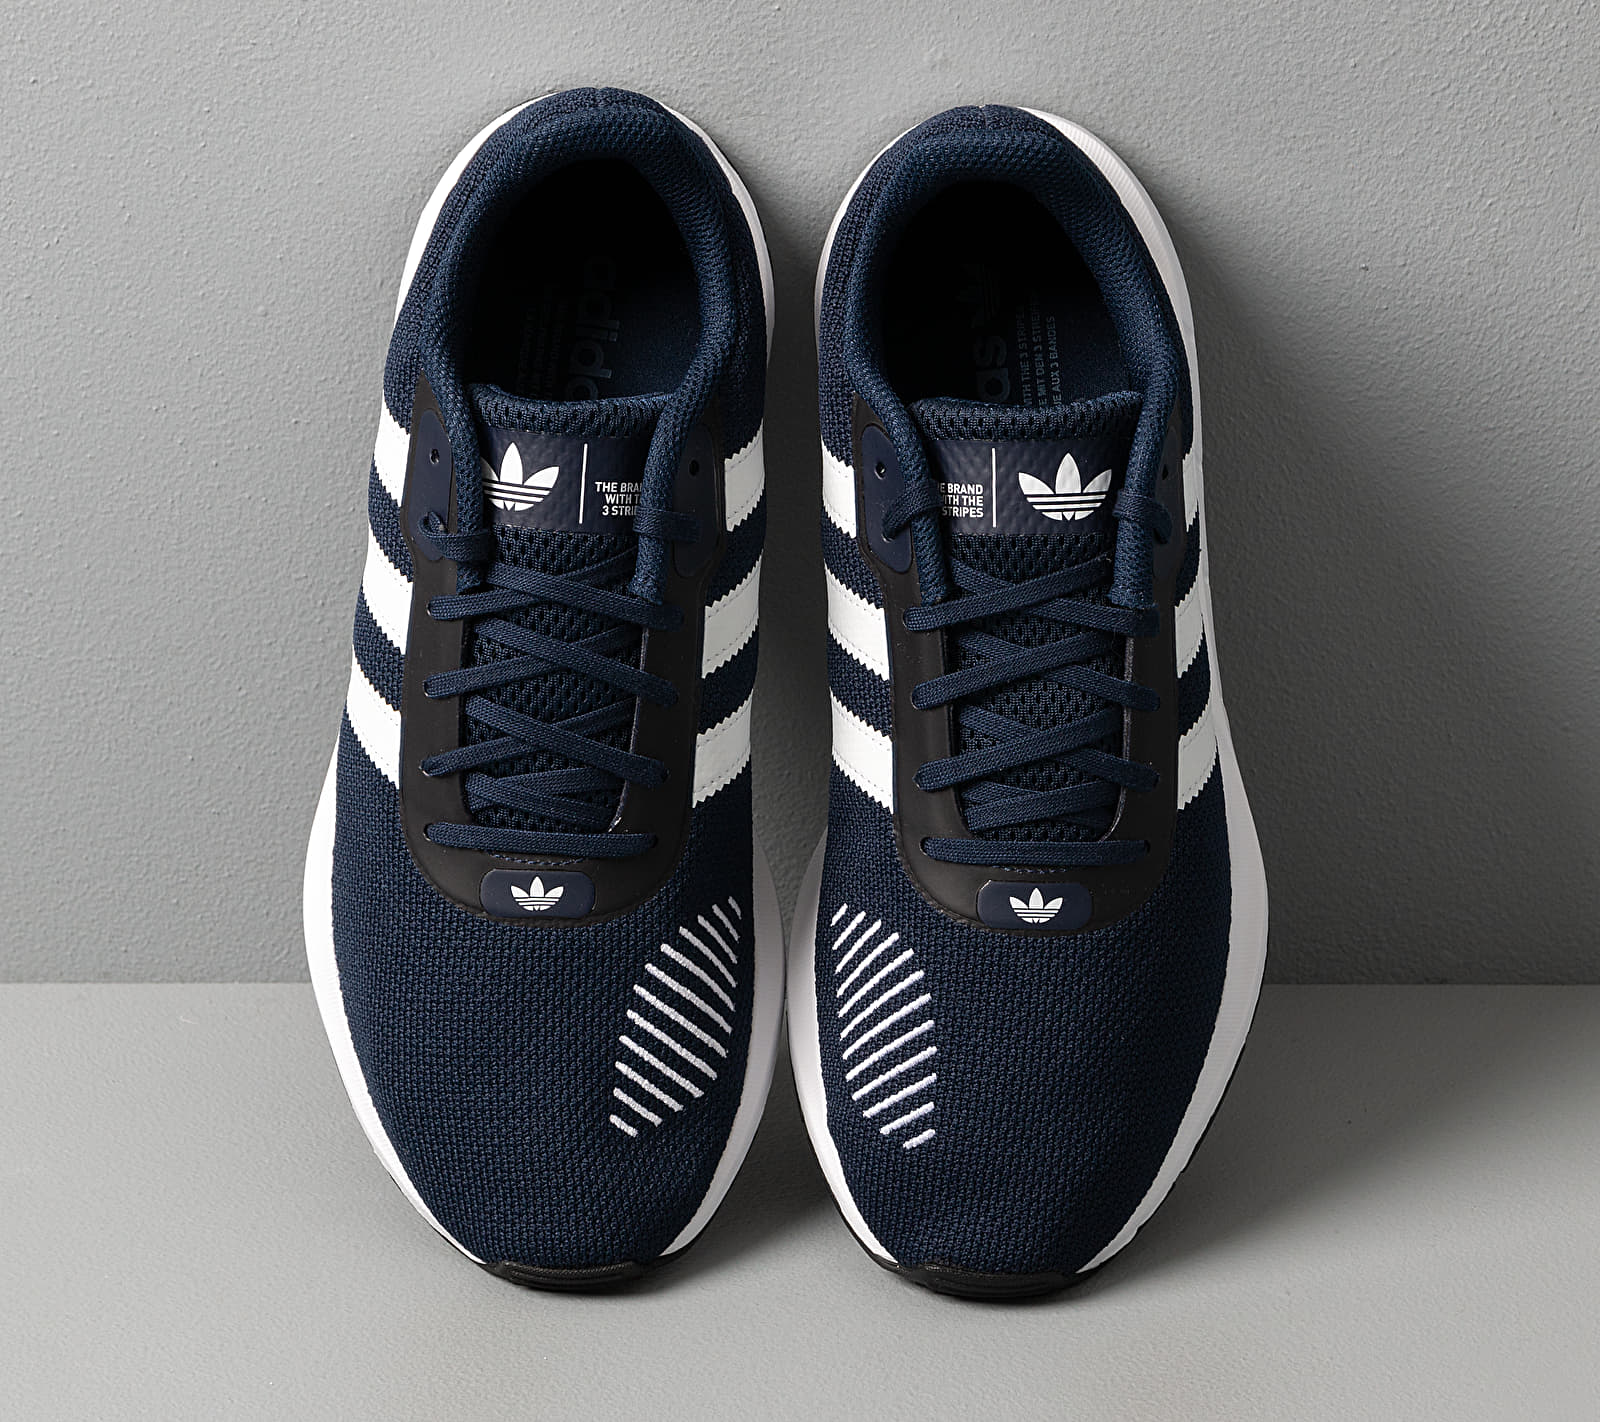 adidas Swift Run Rf Collegiate Navy/ Ftw White/ Core Black, Blue